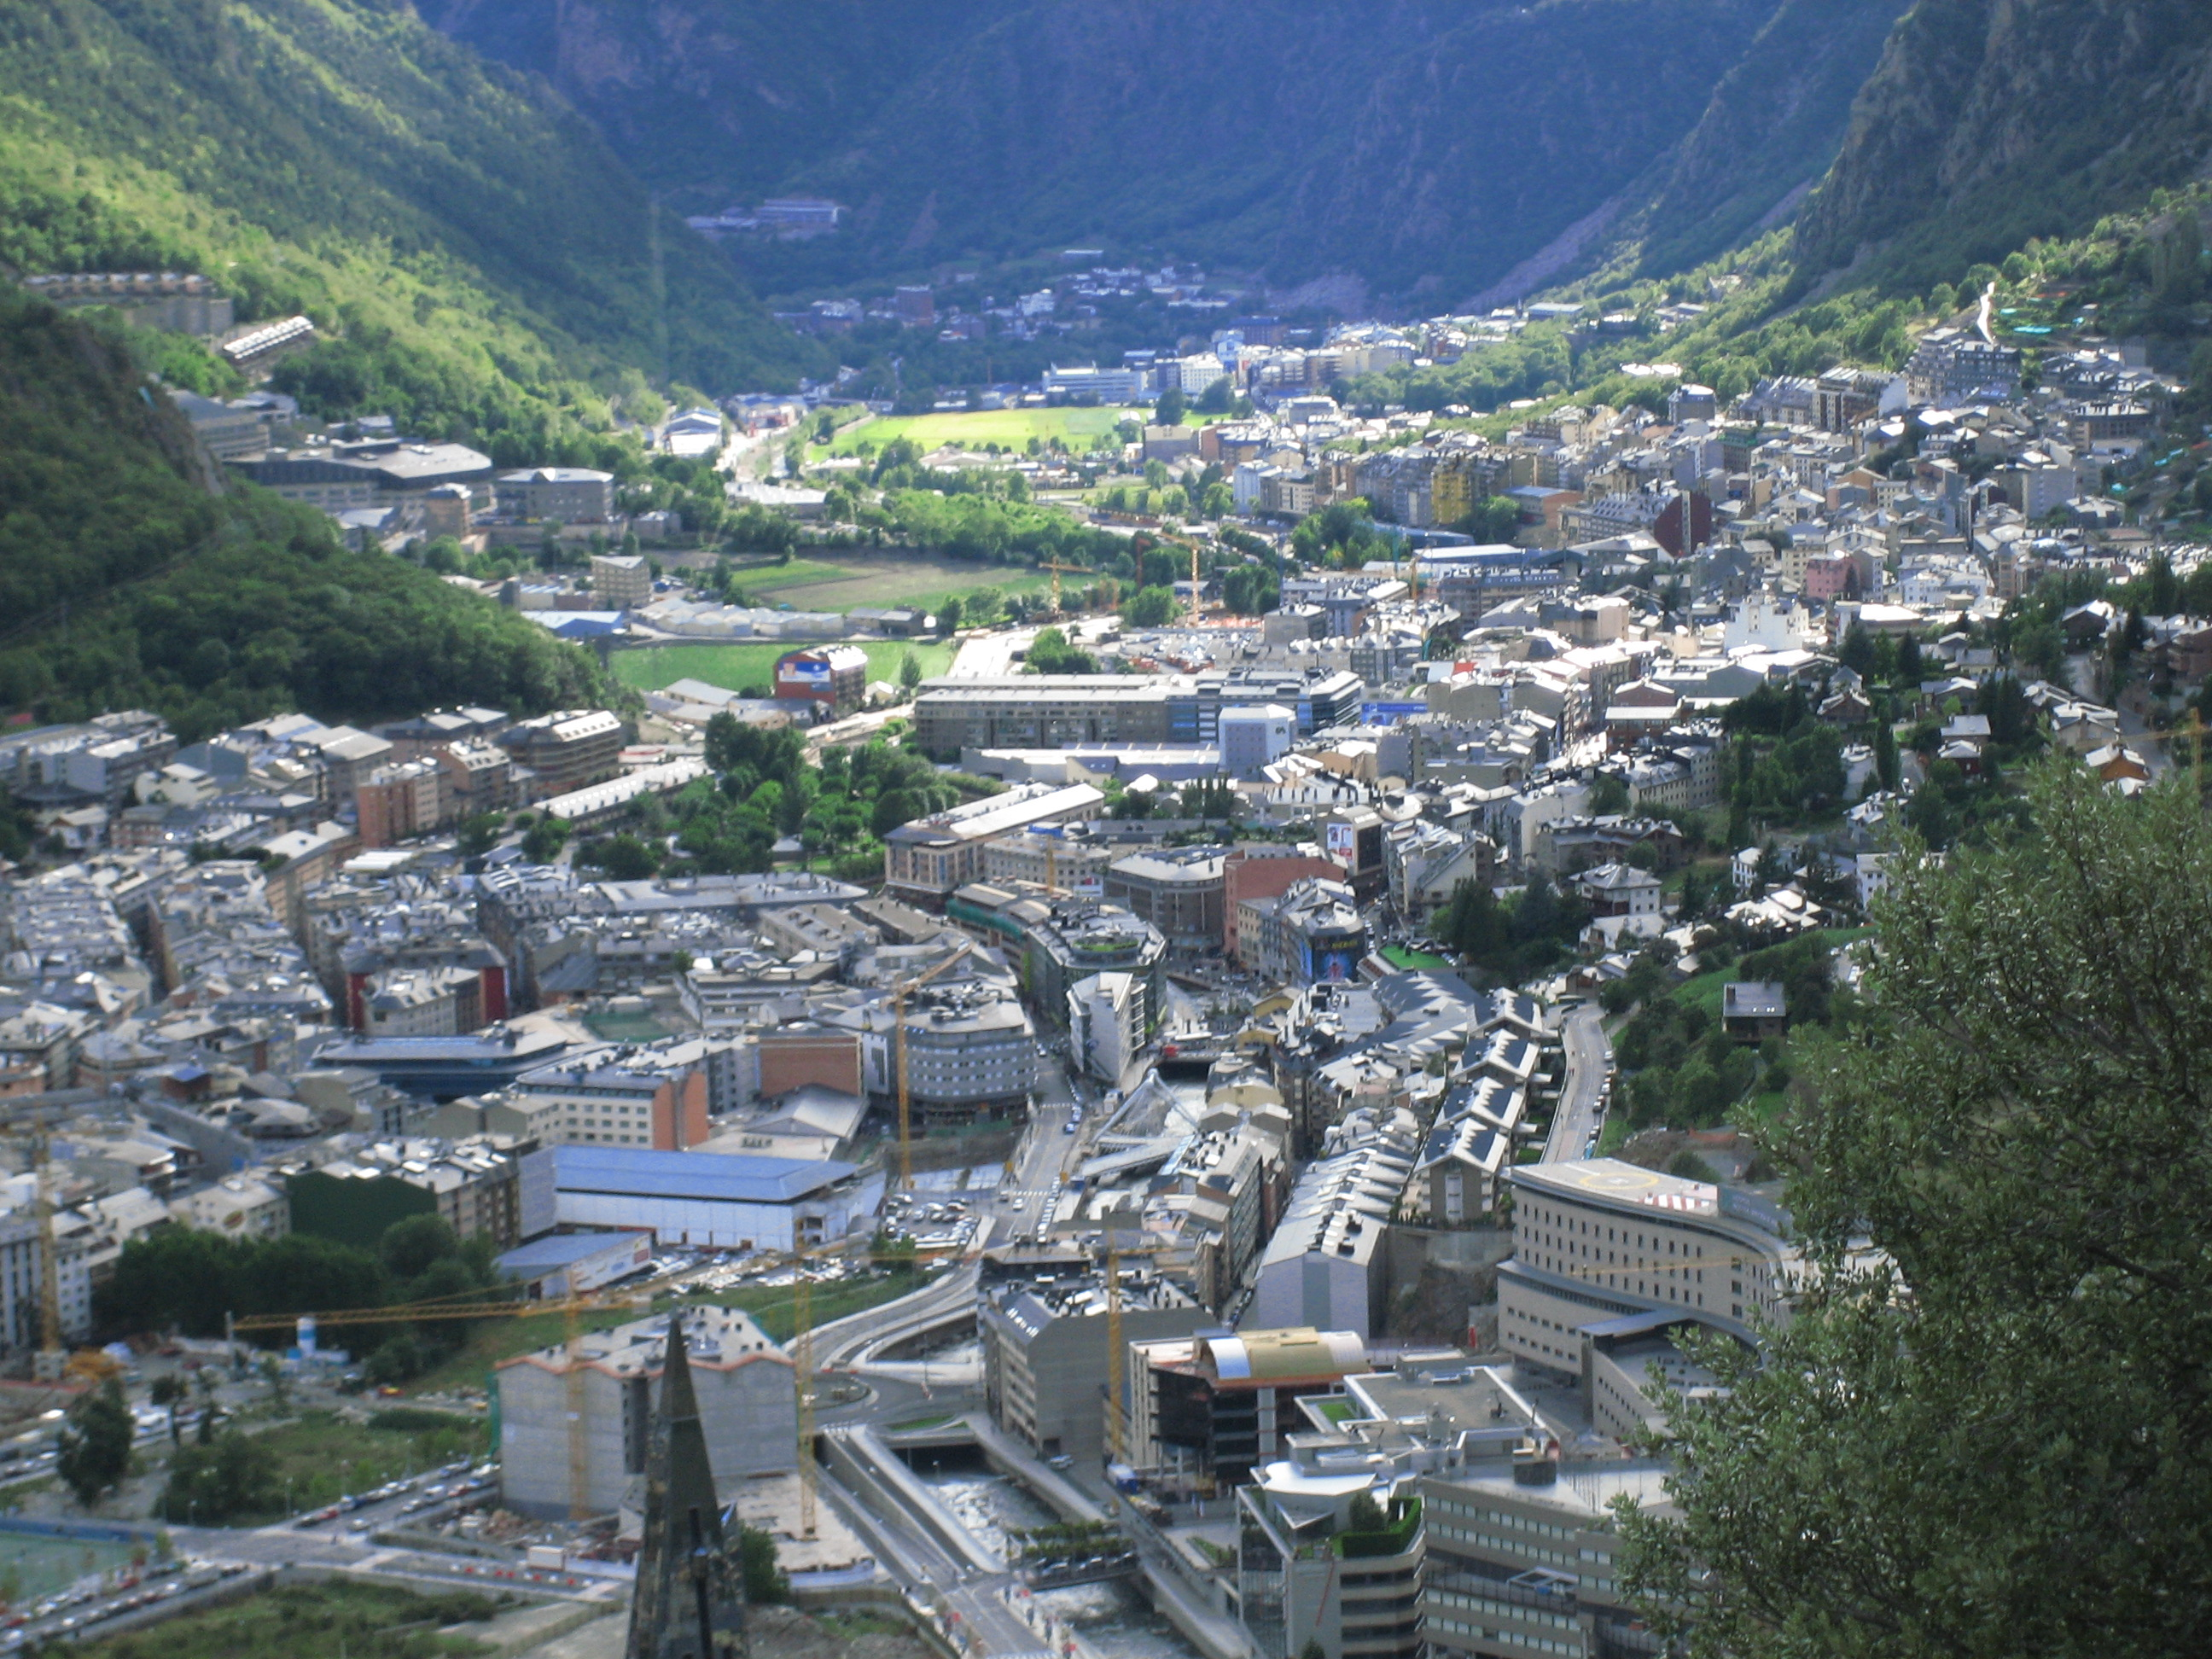 Andorra la Vella - Wikipedia, the free encyclopedia ANDORRA